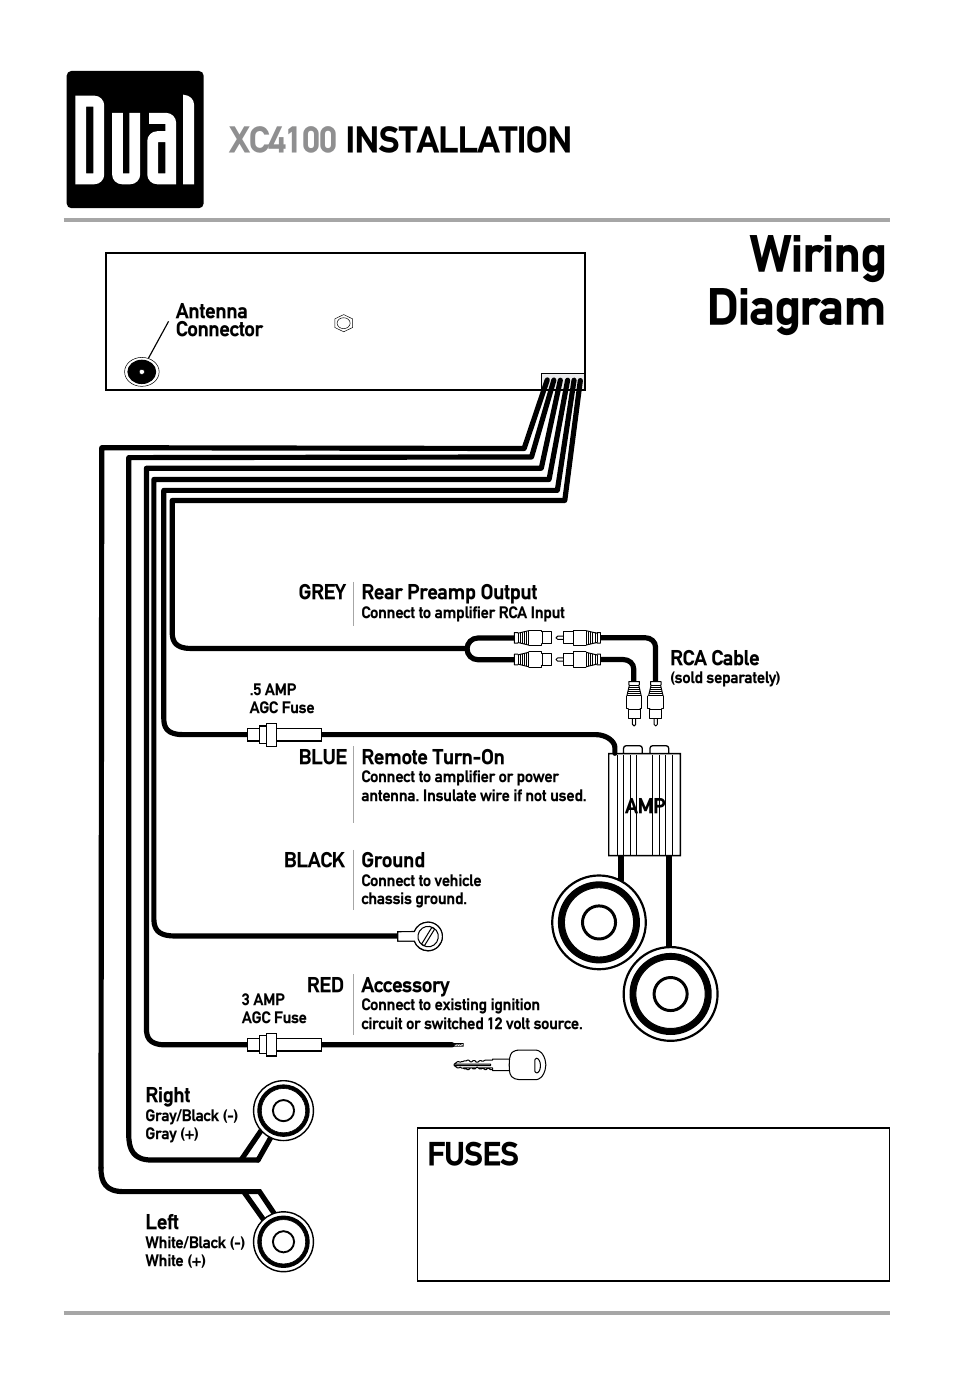 wiring diagram  xc4100 installation  fuses